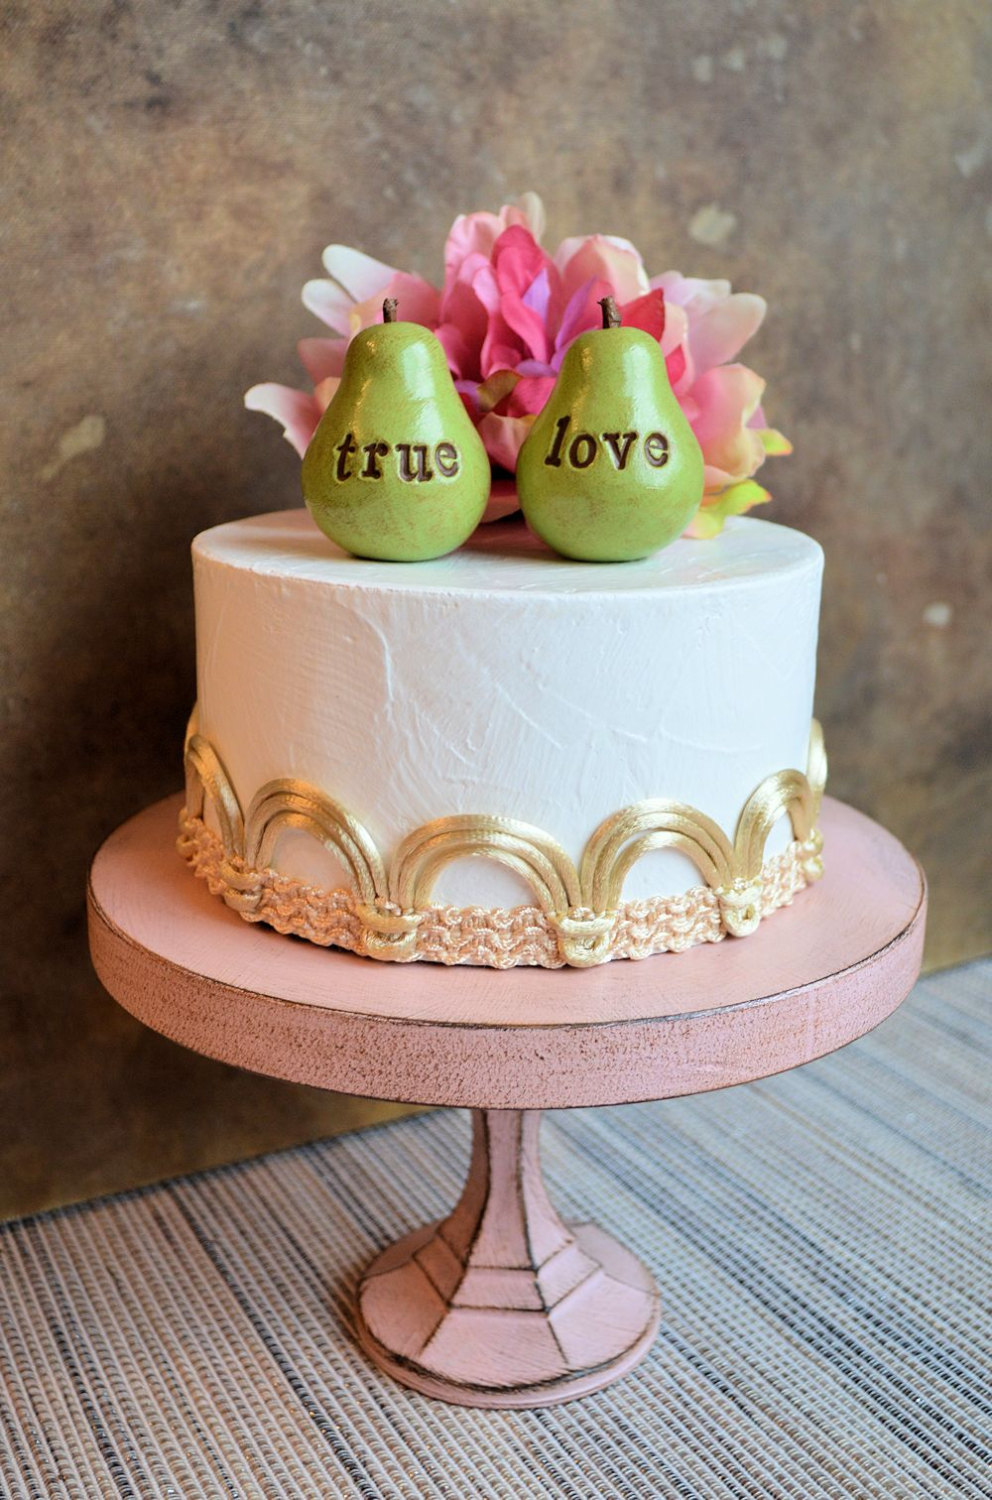 pair-of-pears-wedding-cake-topper-072015.jpg